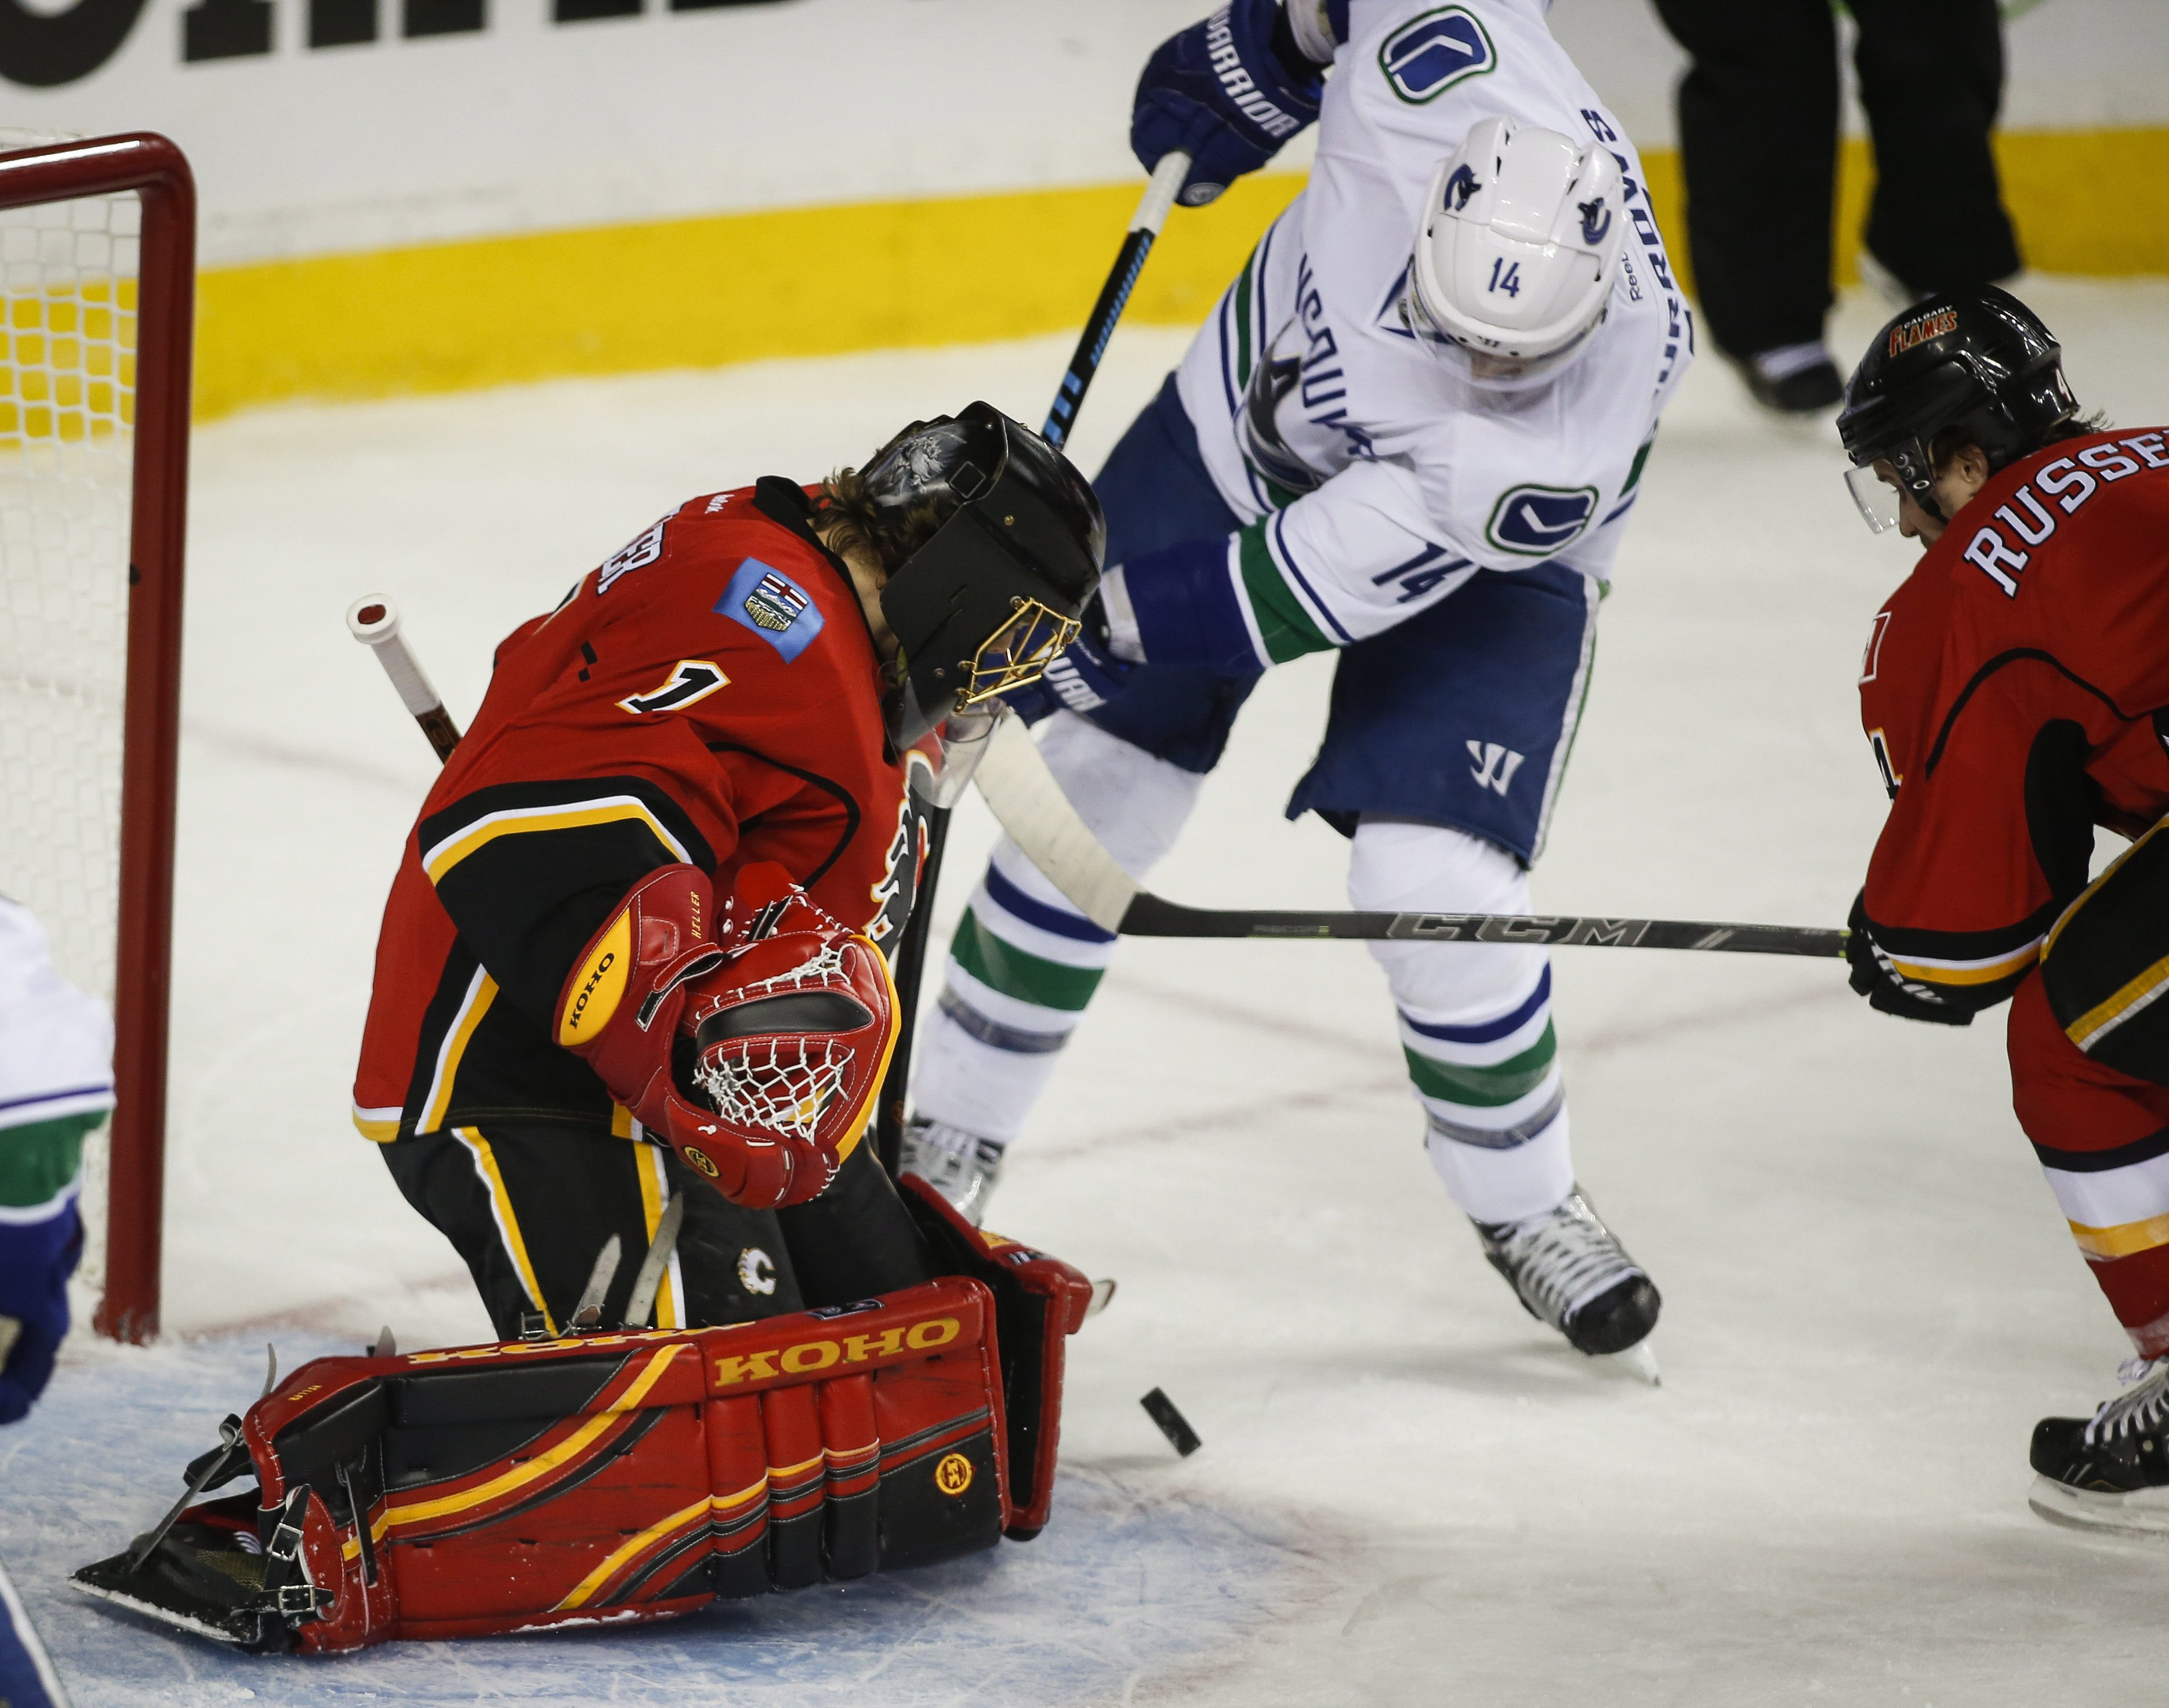 Vancouver Canucks' Alexandre Burrows, centre, tries to get the puck past Calgary Flames goalie Jonas Hiller, from Switzerland, during second period NHL first round playoff hockey action in Calgary, Sunday, April 19, 2015. (Jeff McIntosh/The Canadian Press